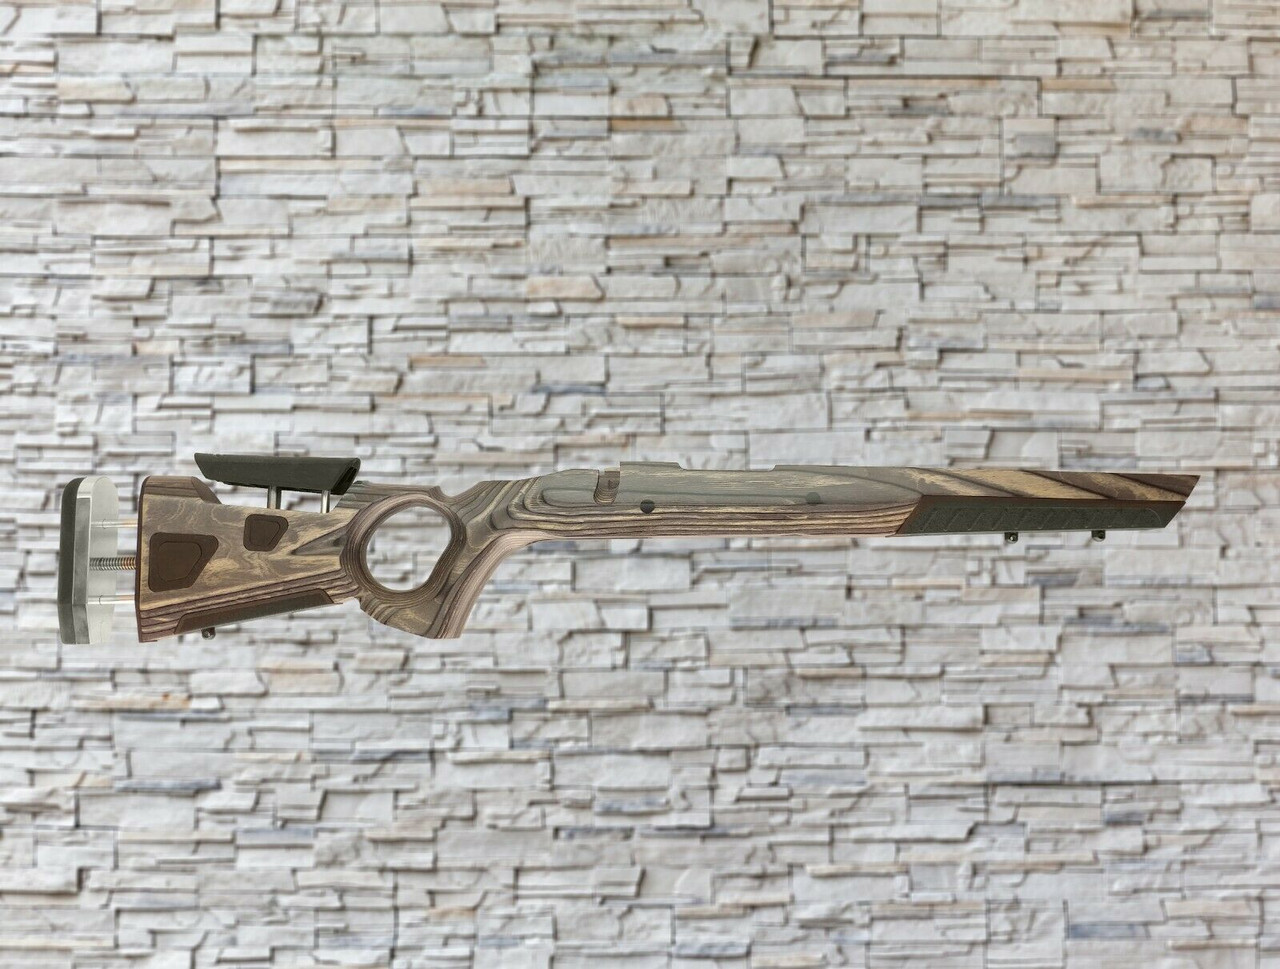 Boyds At-One Thumbhole Wood Stock Pepper for Marlin Xs7 SA Tapered Barrel Rifles